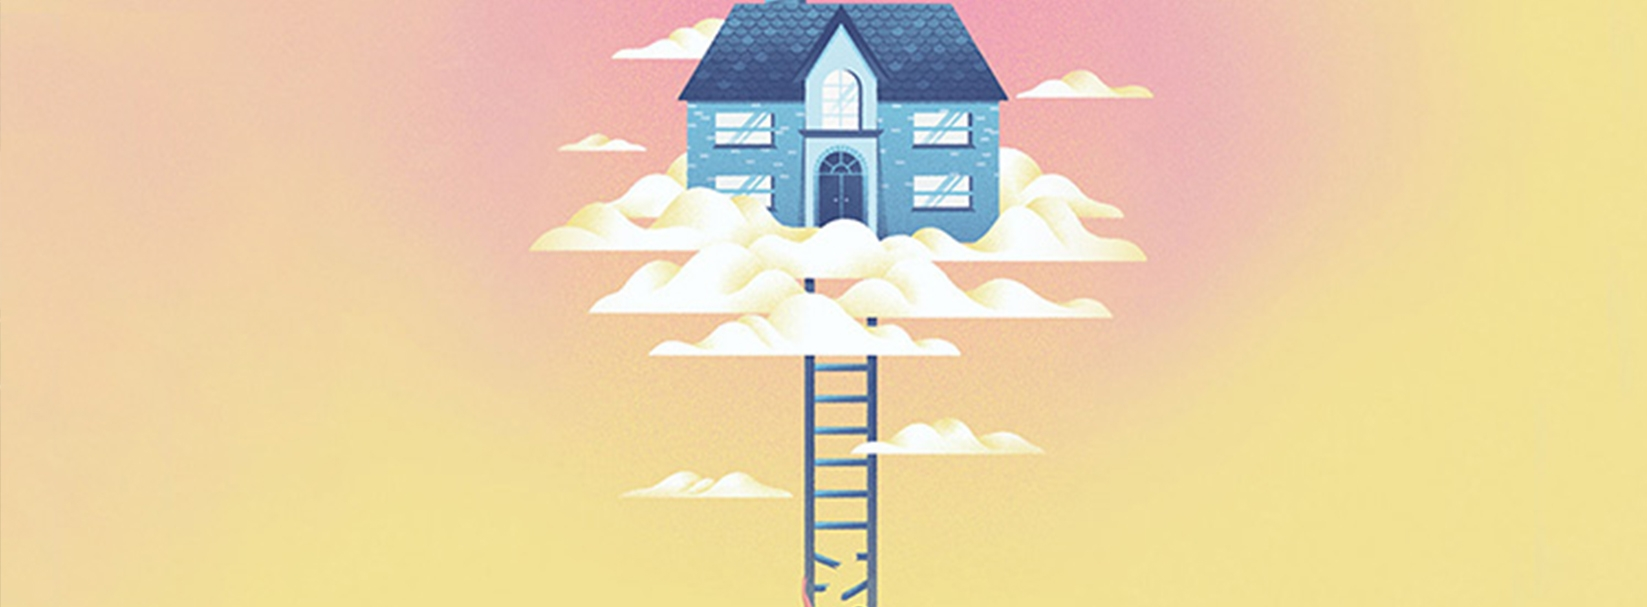 The wealth of ages | A discussion on housing affordability